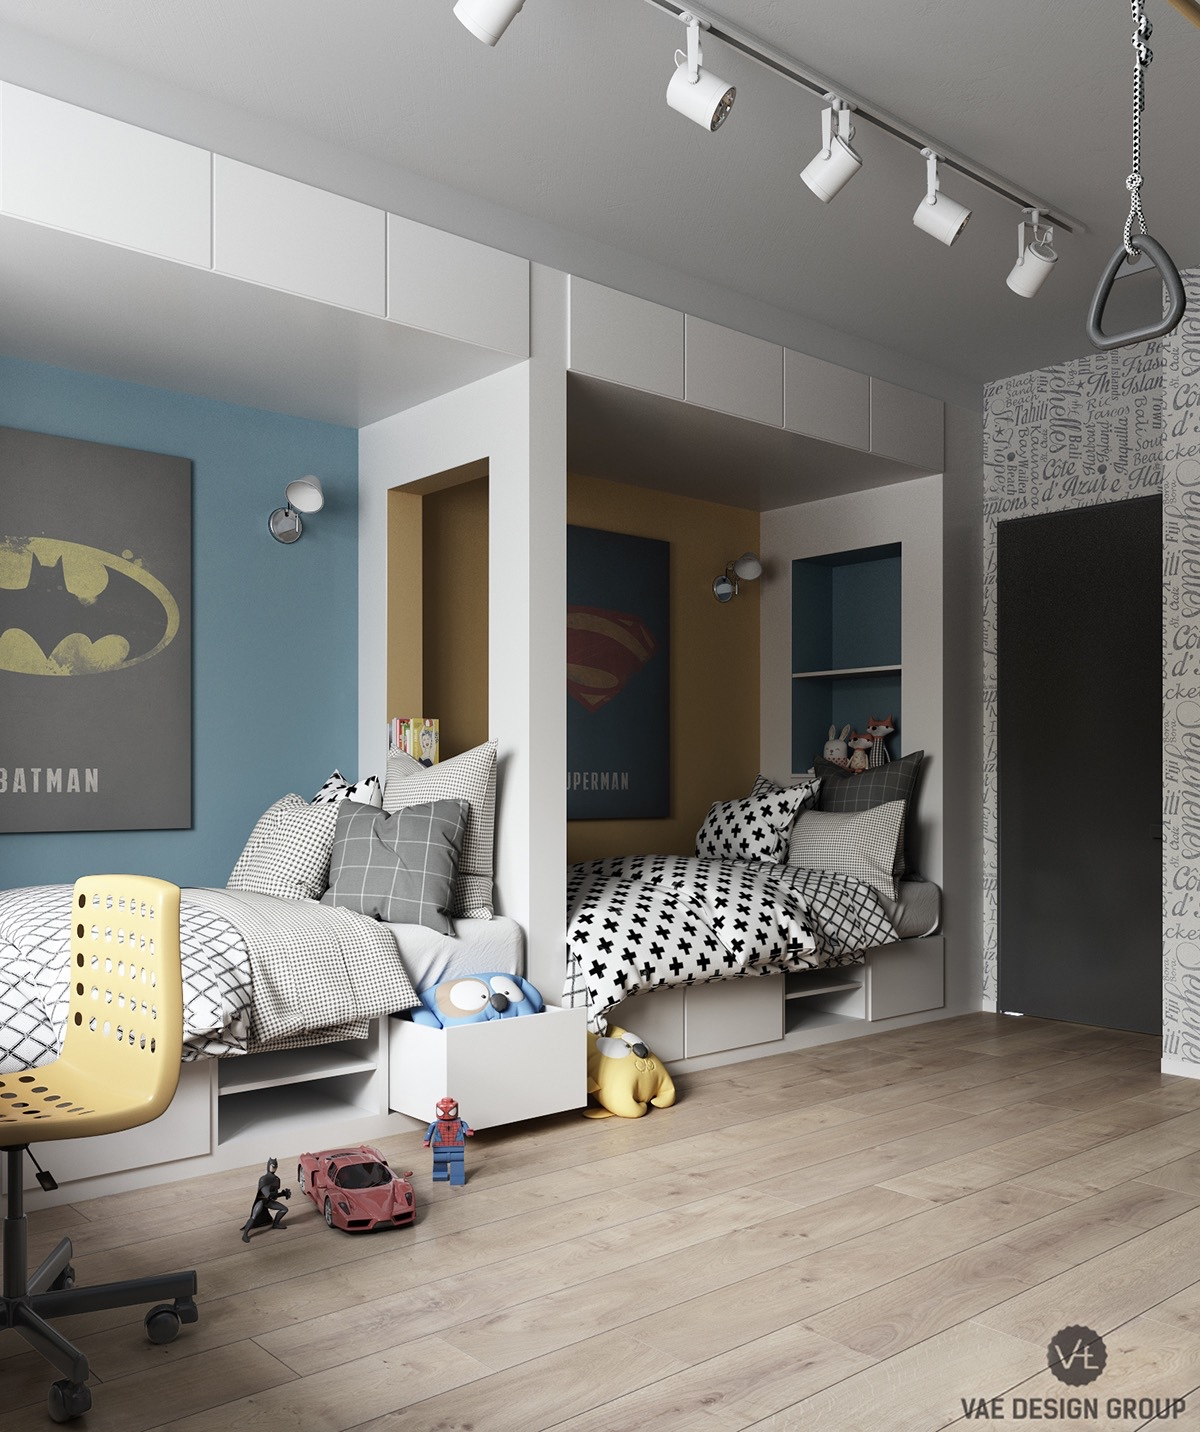 comic-book-decor-for-kids-bedroom